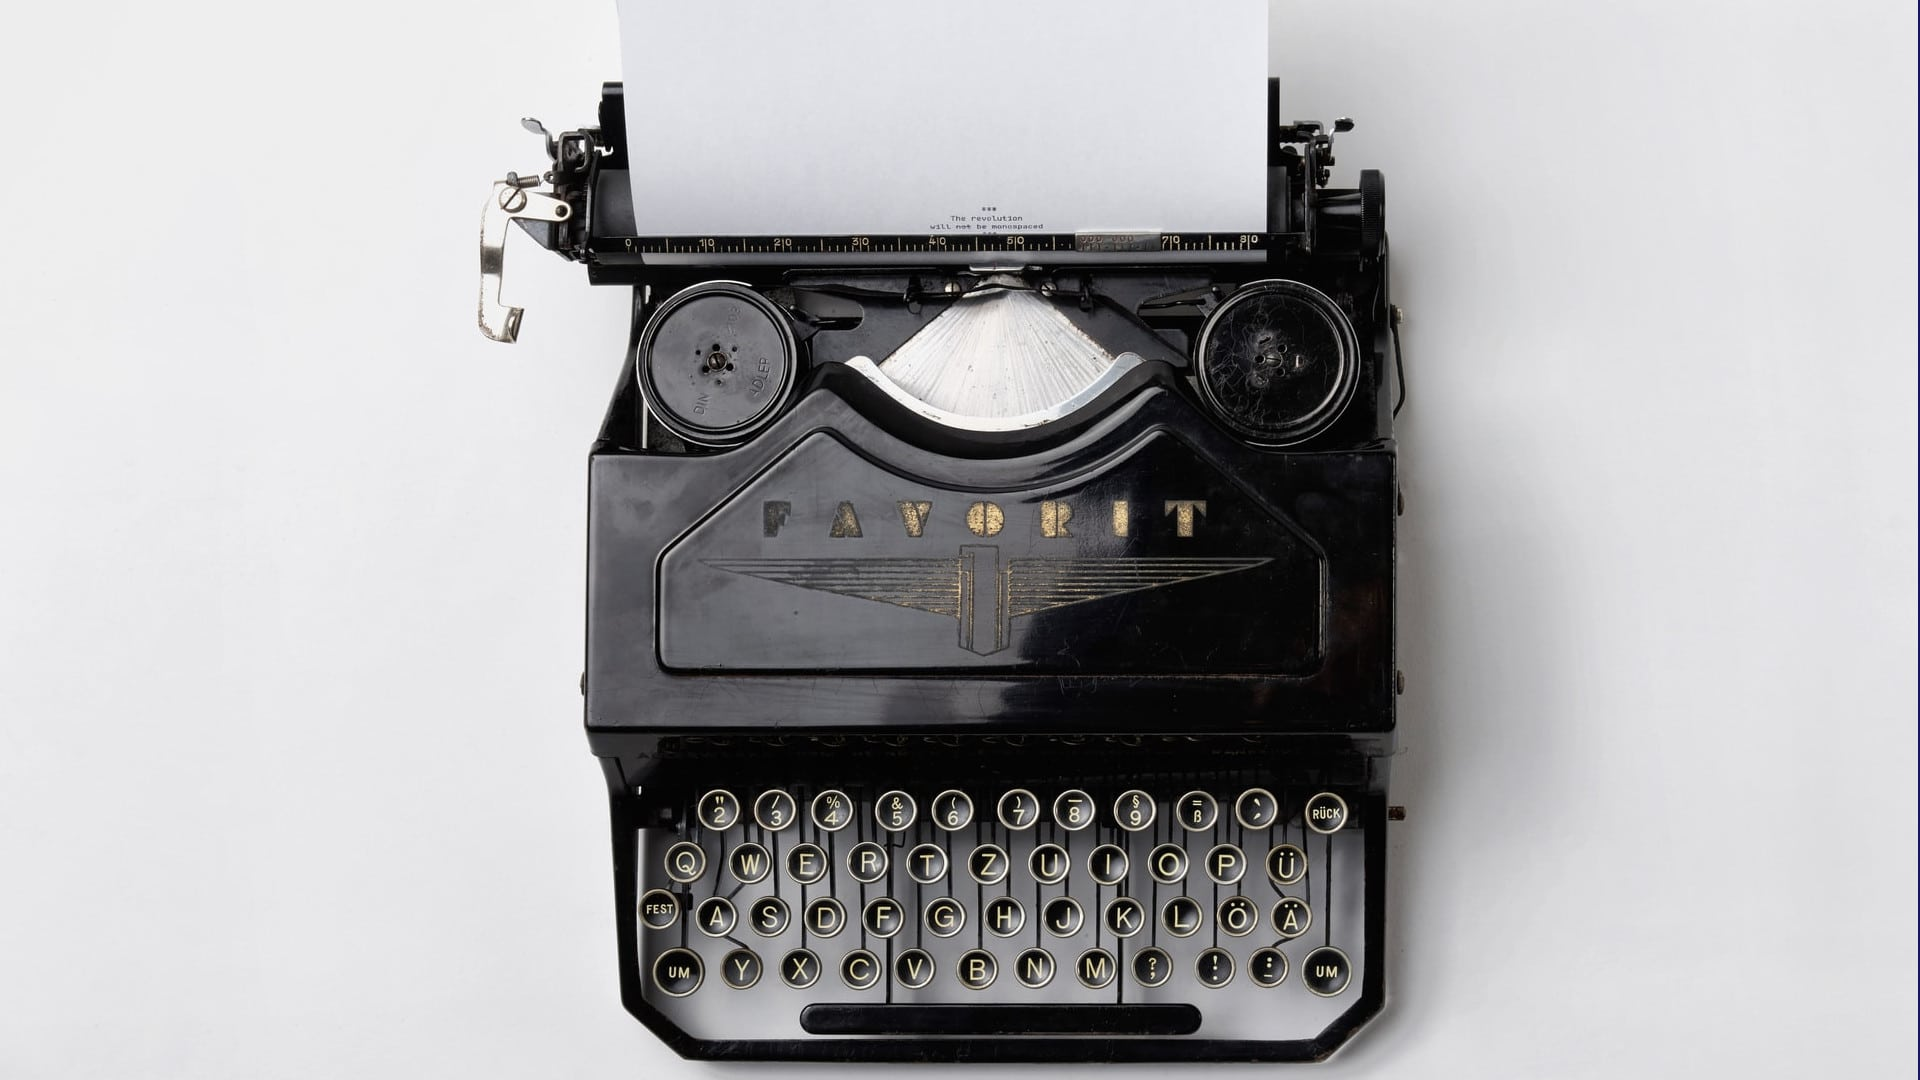 Covering Letter - Typwriter